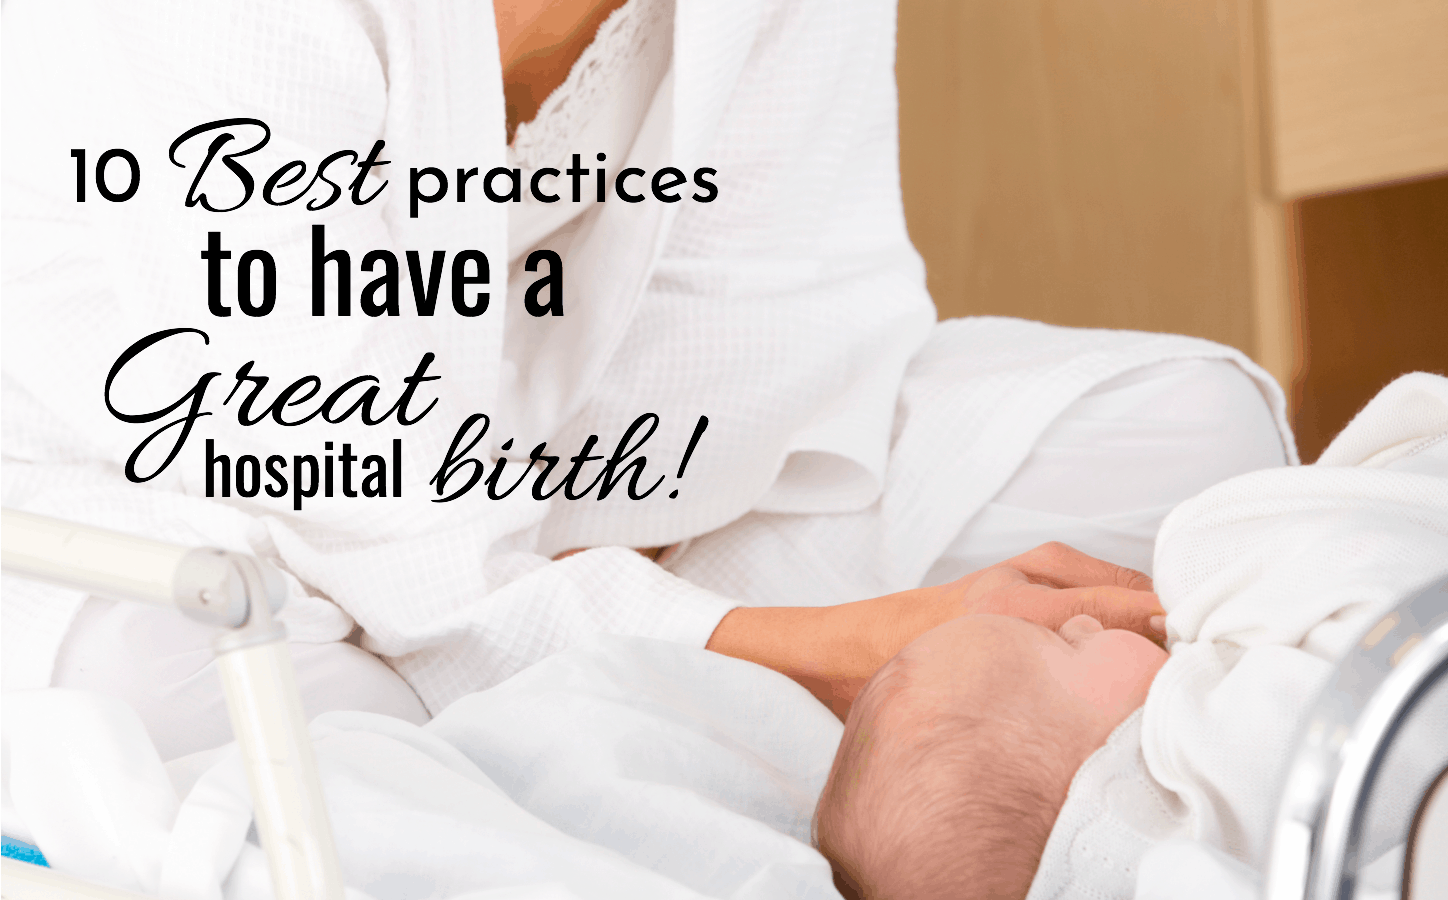 10 best practices to have a great hospital birth. Mom with newborn in hospital after delivery.